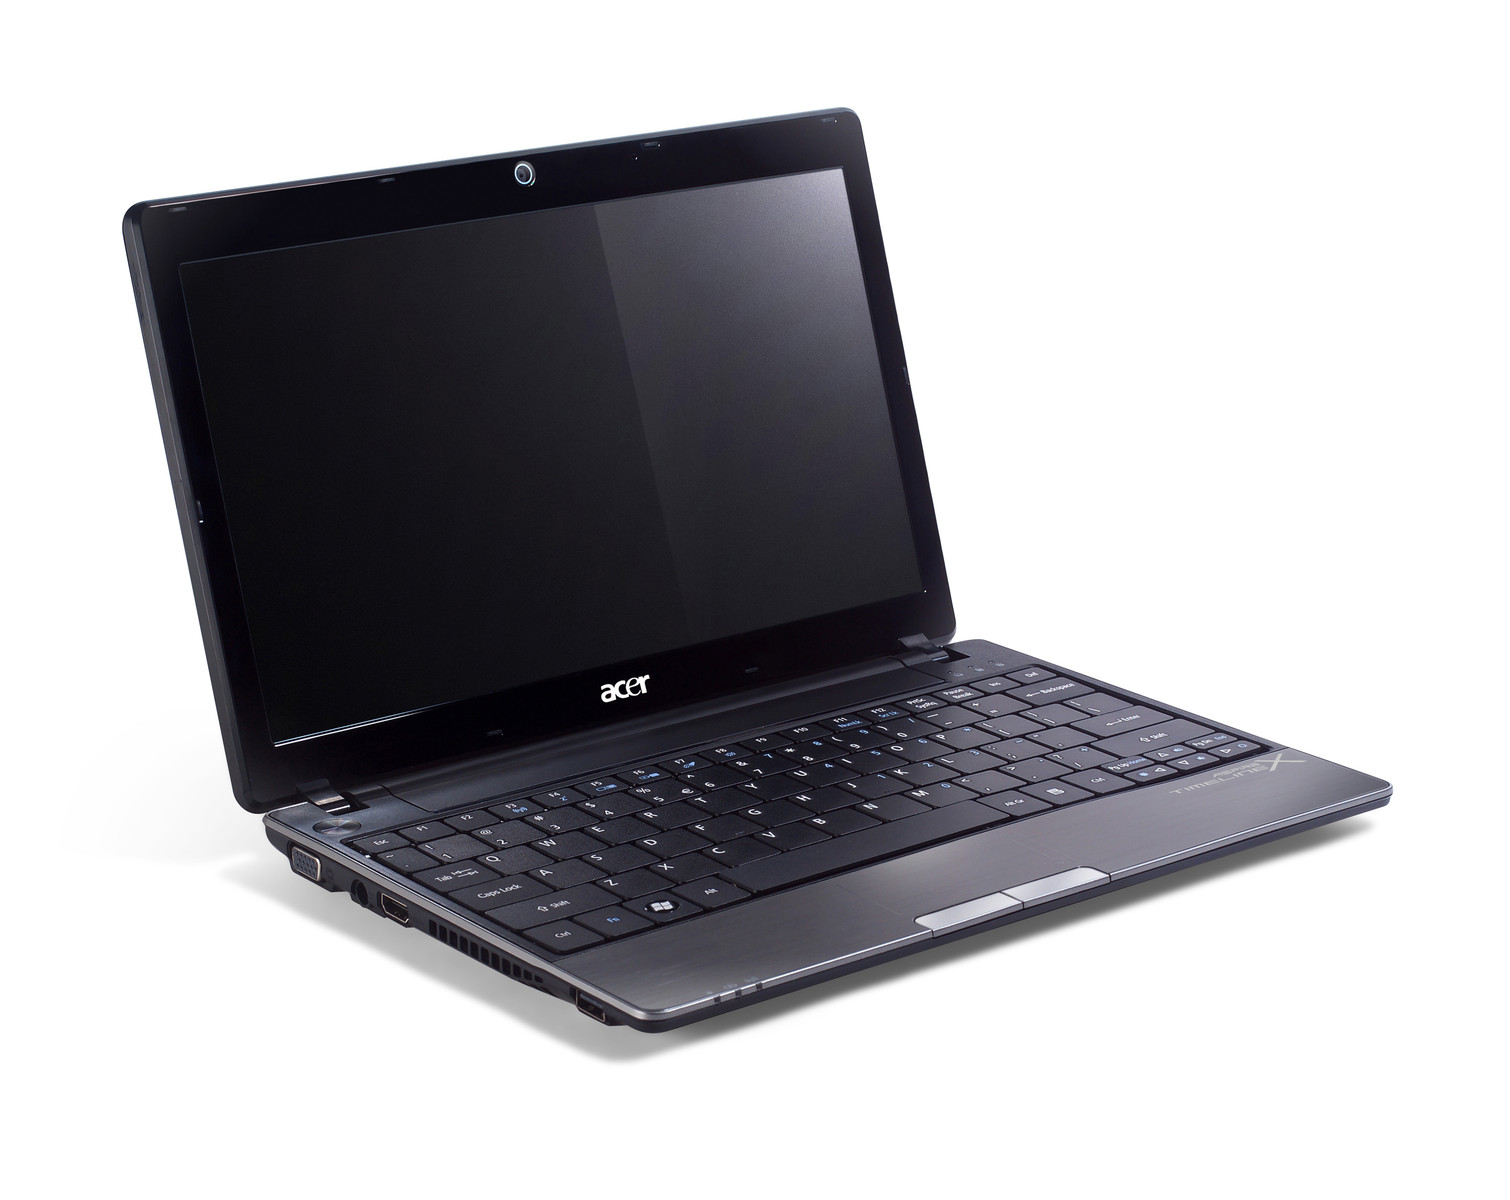 Acer aspire 1830 notebooklaptop pc series driver update and drivers installation dvd disk